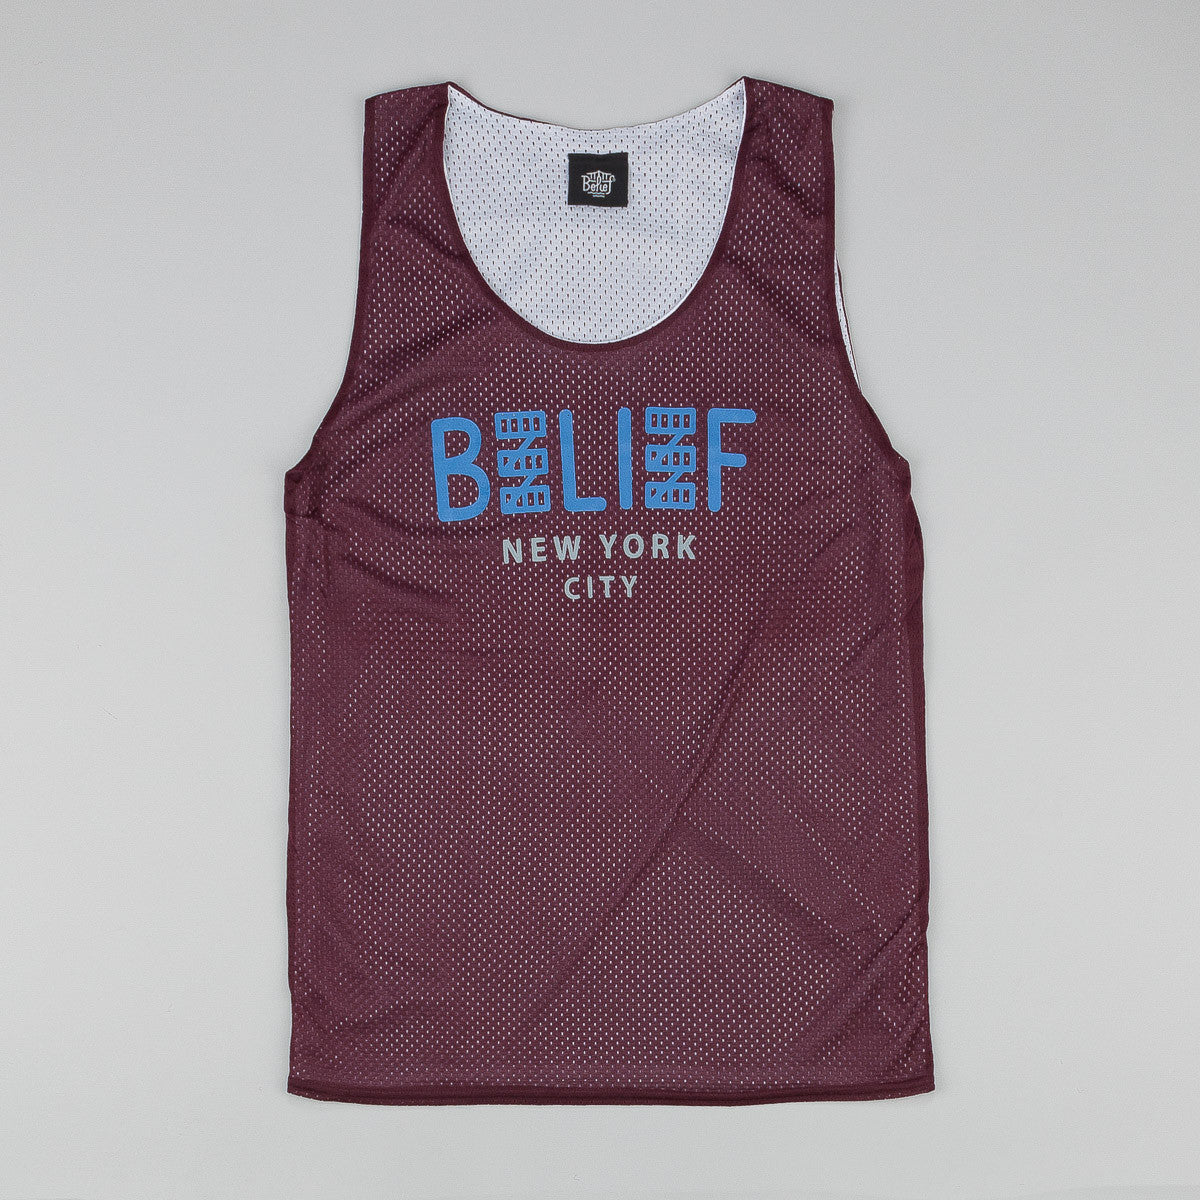 Belief City Block Basketball Jersey - Burgundy